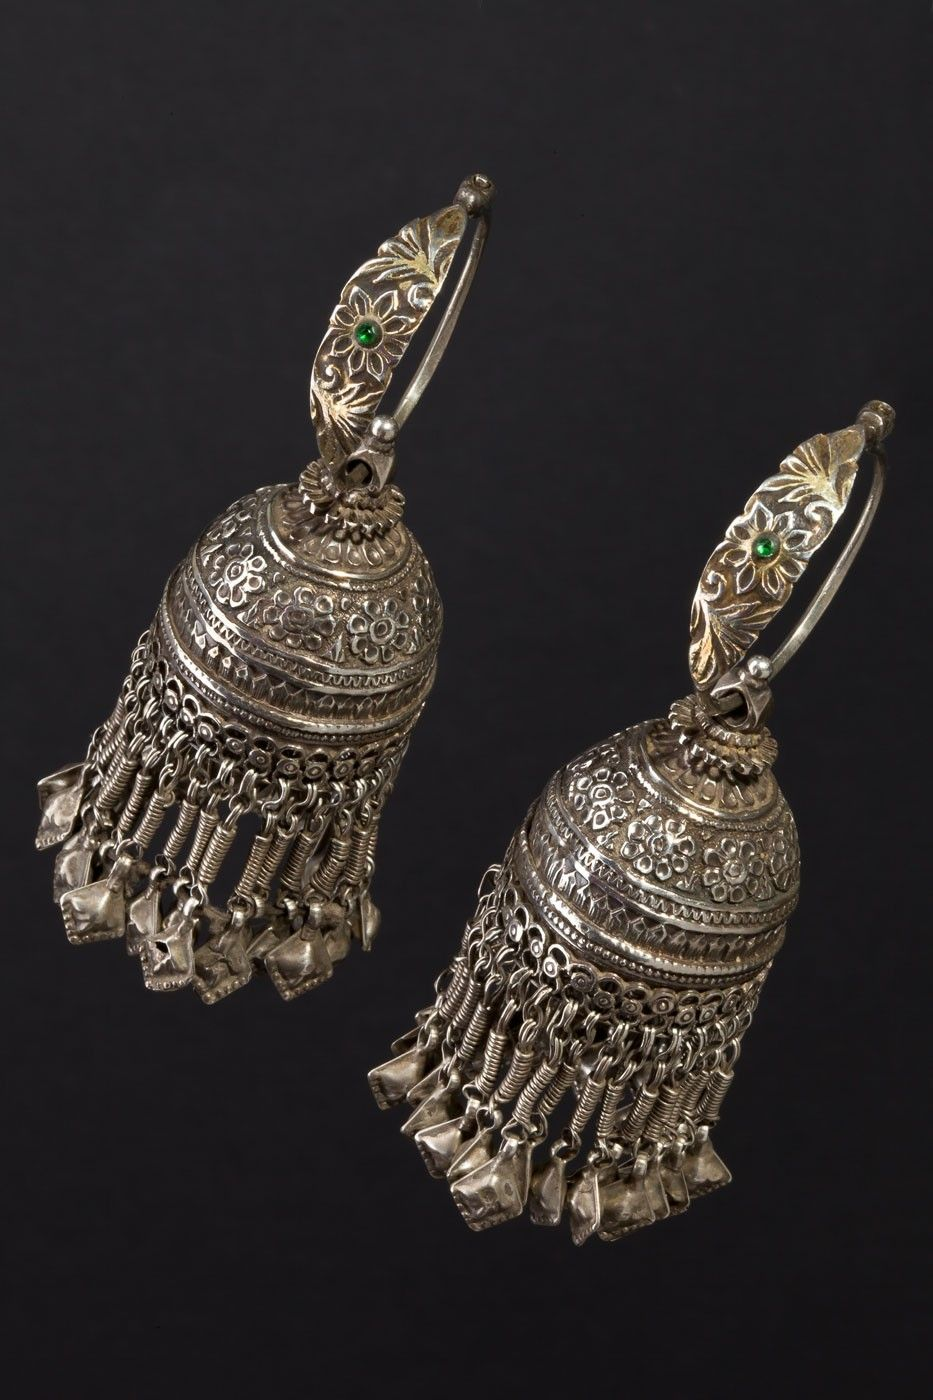 fd89f0916 Gold Jewelry In Italy. Rajasthan and Northern India | Vintage Karanphul Jhumka  earrings.